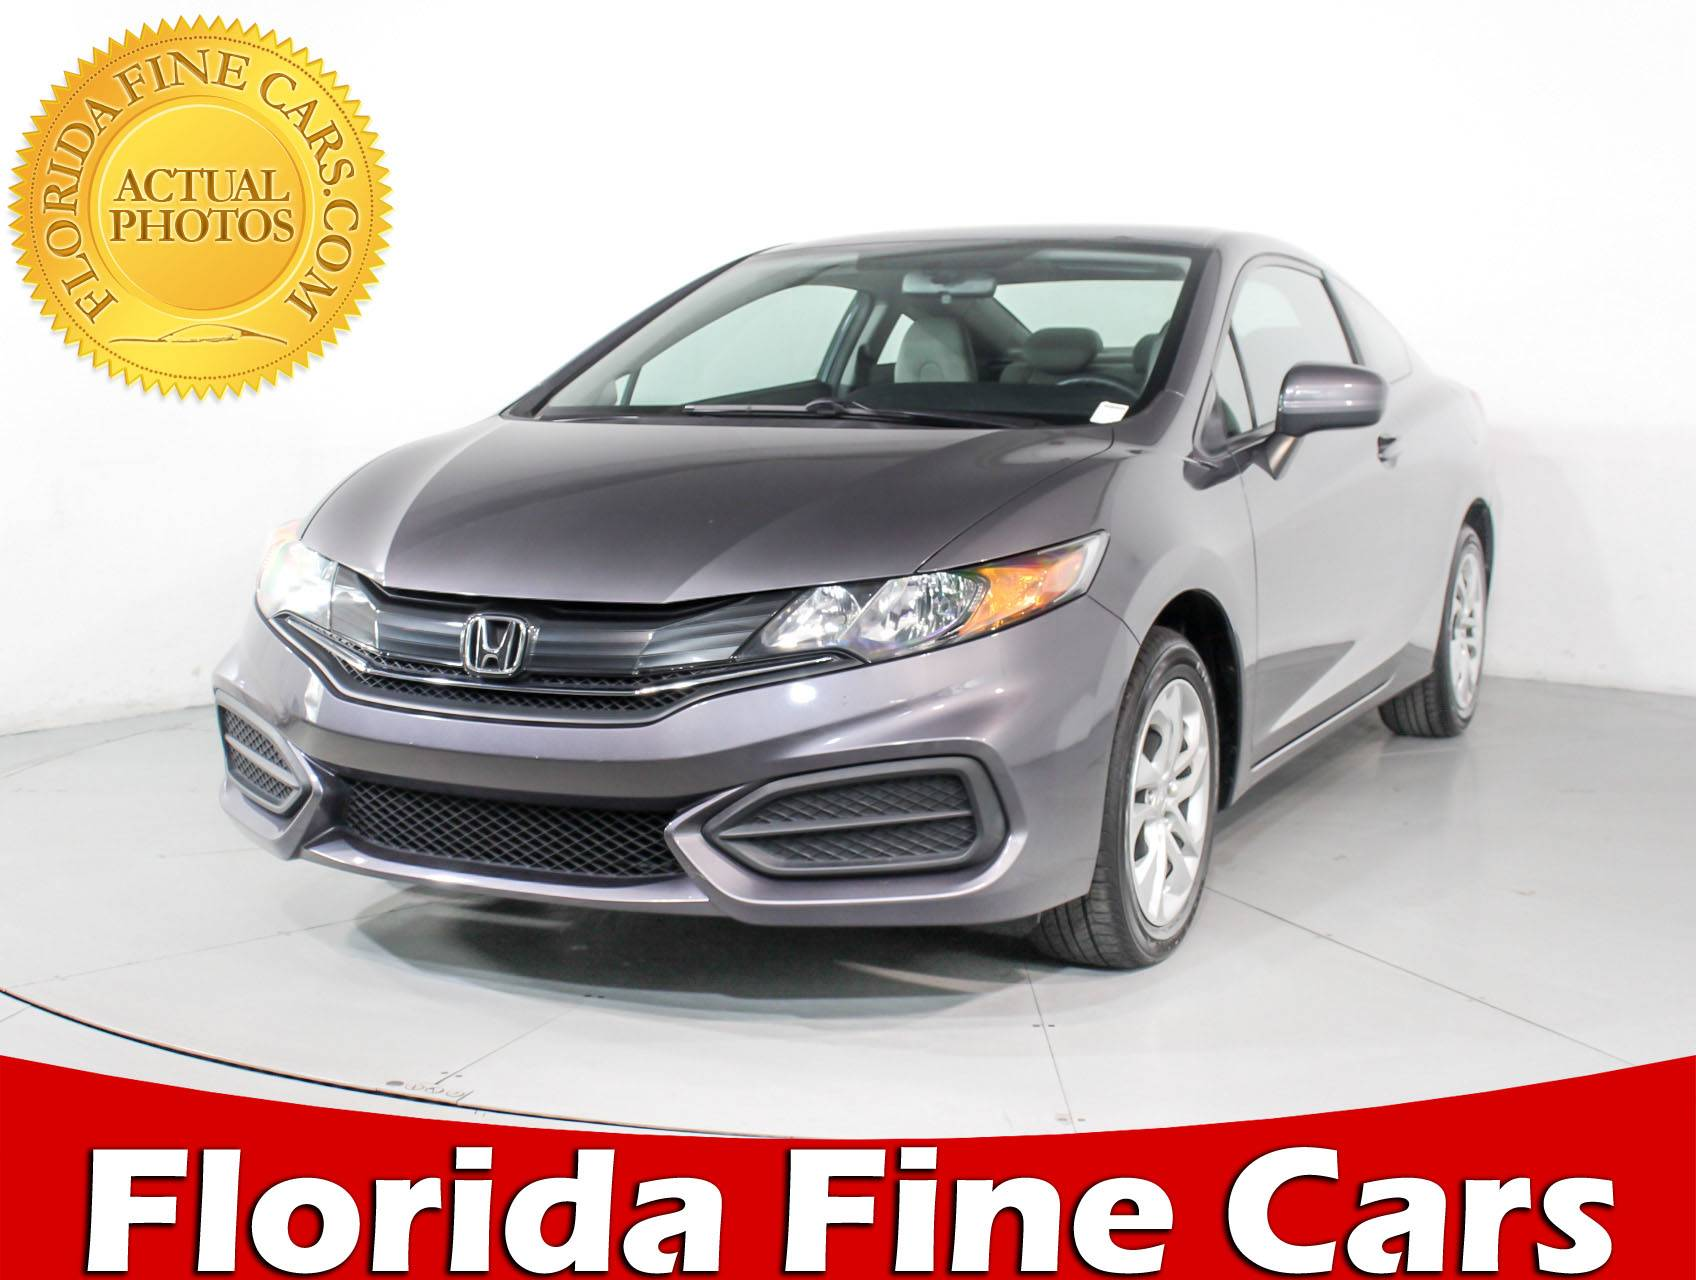 2013 Honda Civic For Sale Carsforsale Com >> Used 2015 HONDA CIVIC LX Coupe for sale in HOLLYWOOD, FL ...